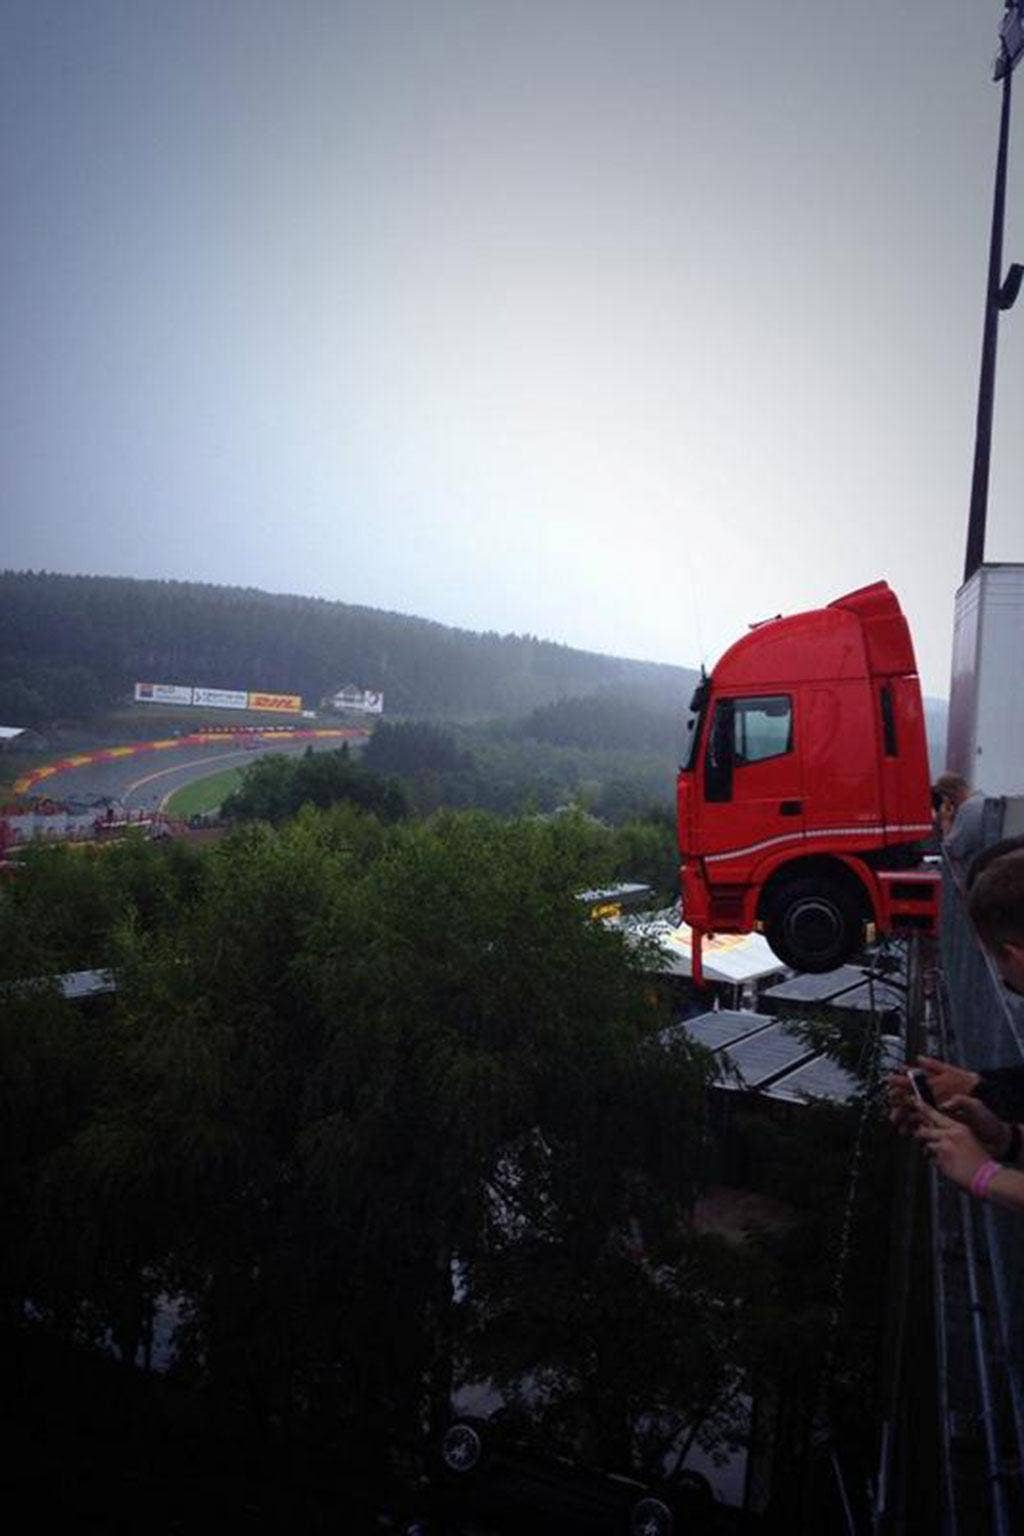 A truck hangs on the edge of a hefty drop at the Spa-Franchorchamps track